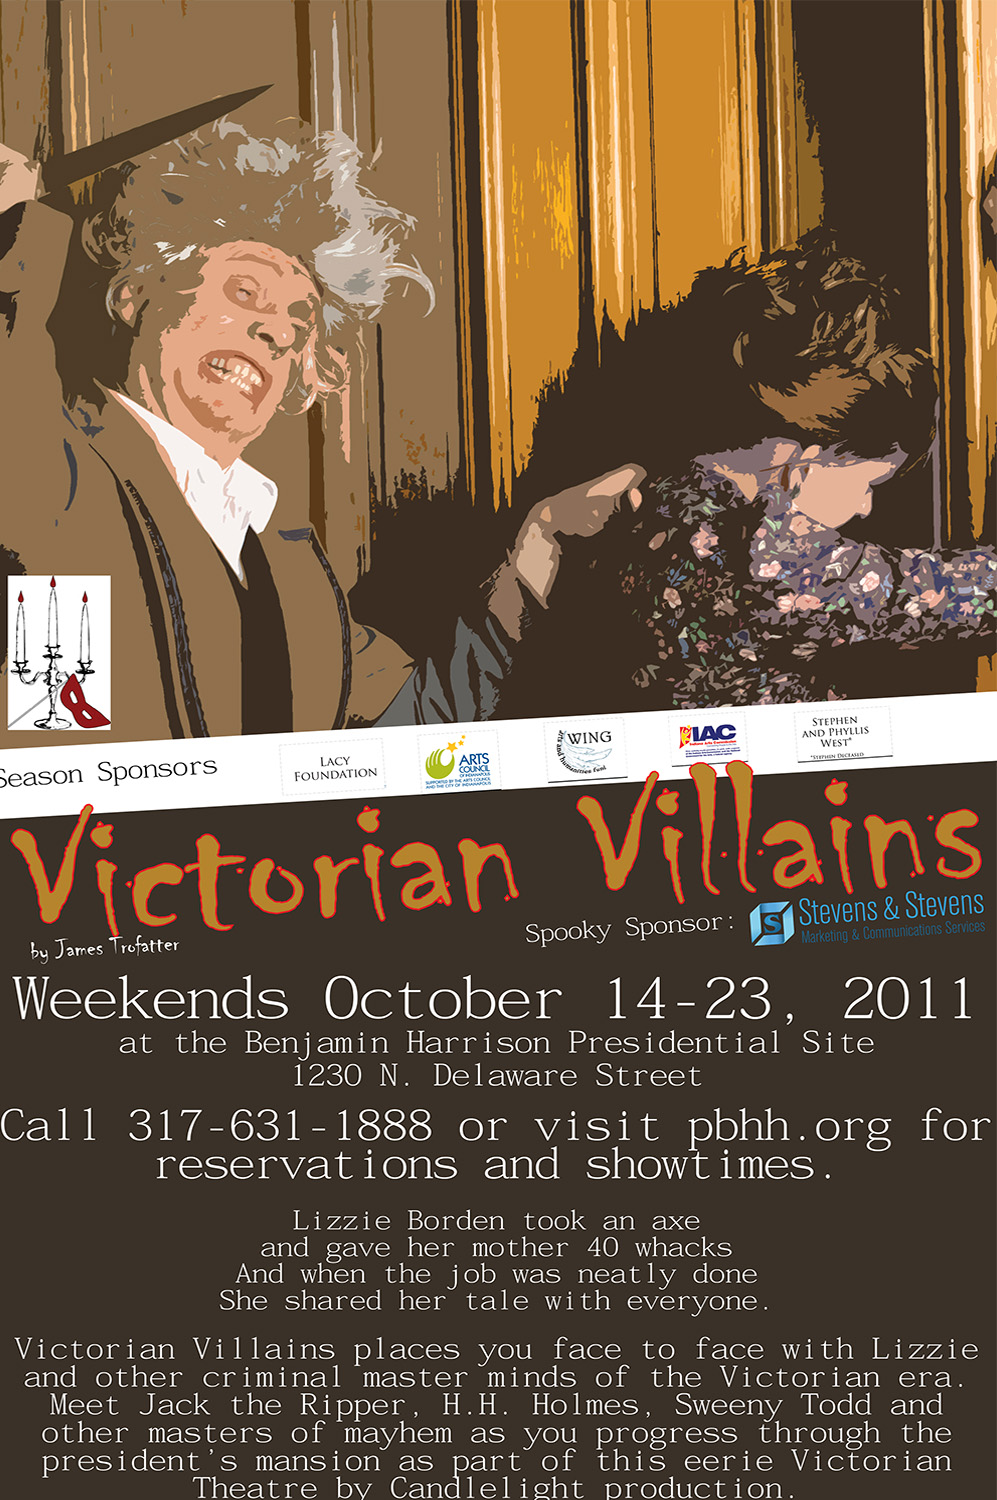 Graphic image of a man with his arm drawn back, holding a knife. A woman is trying to run away from him. Text reads: Victorian Villains.